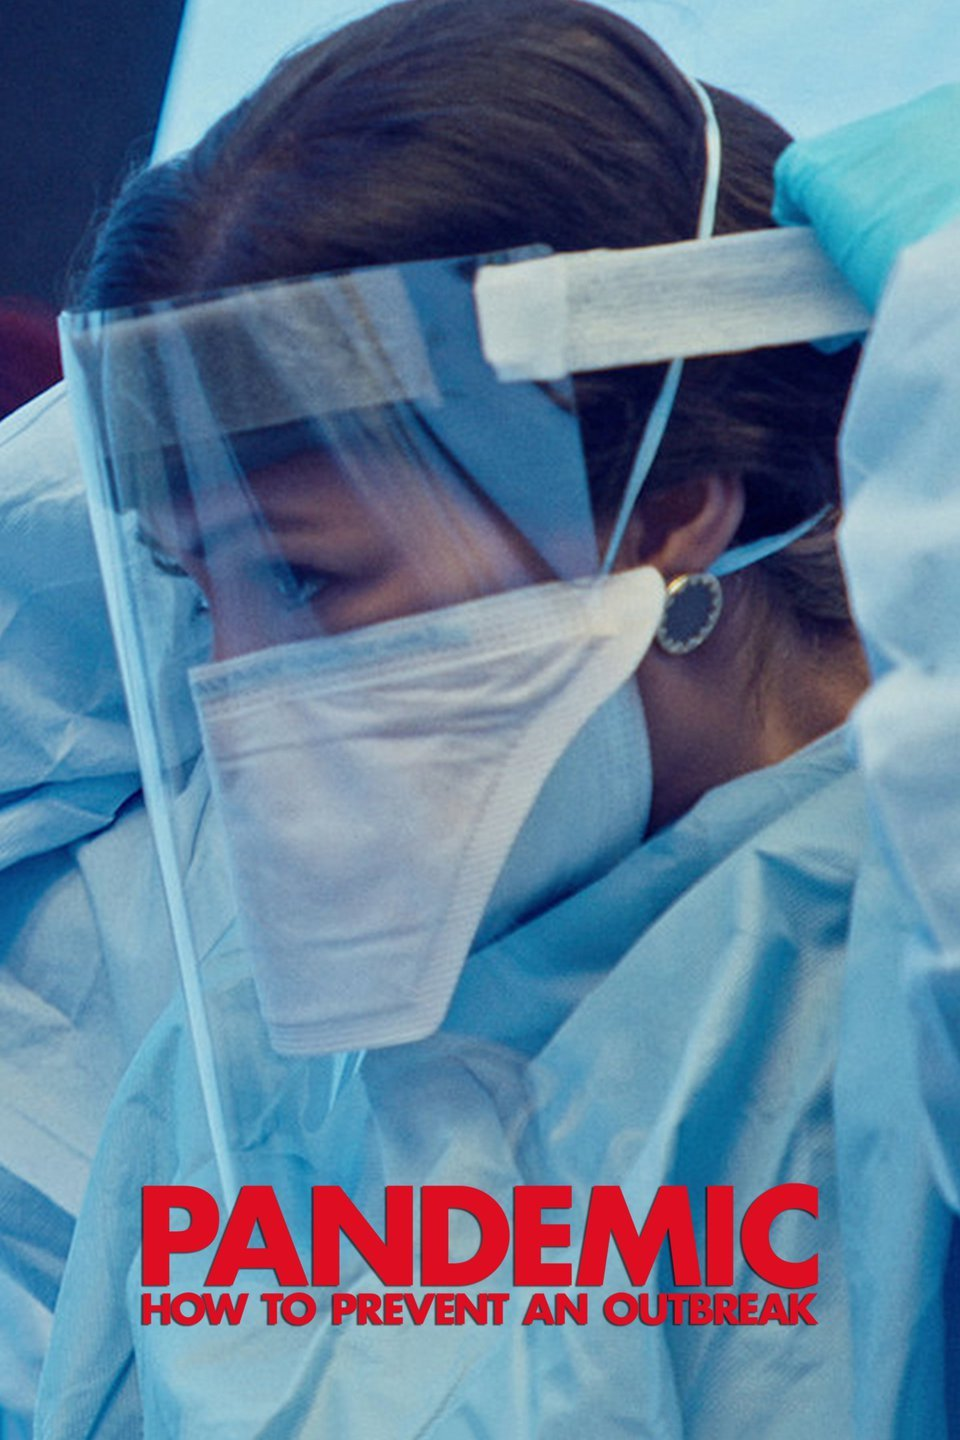 Pandemic: How to Prevent an Outbreak (TV Series 2020– ) - IMDb